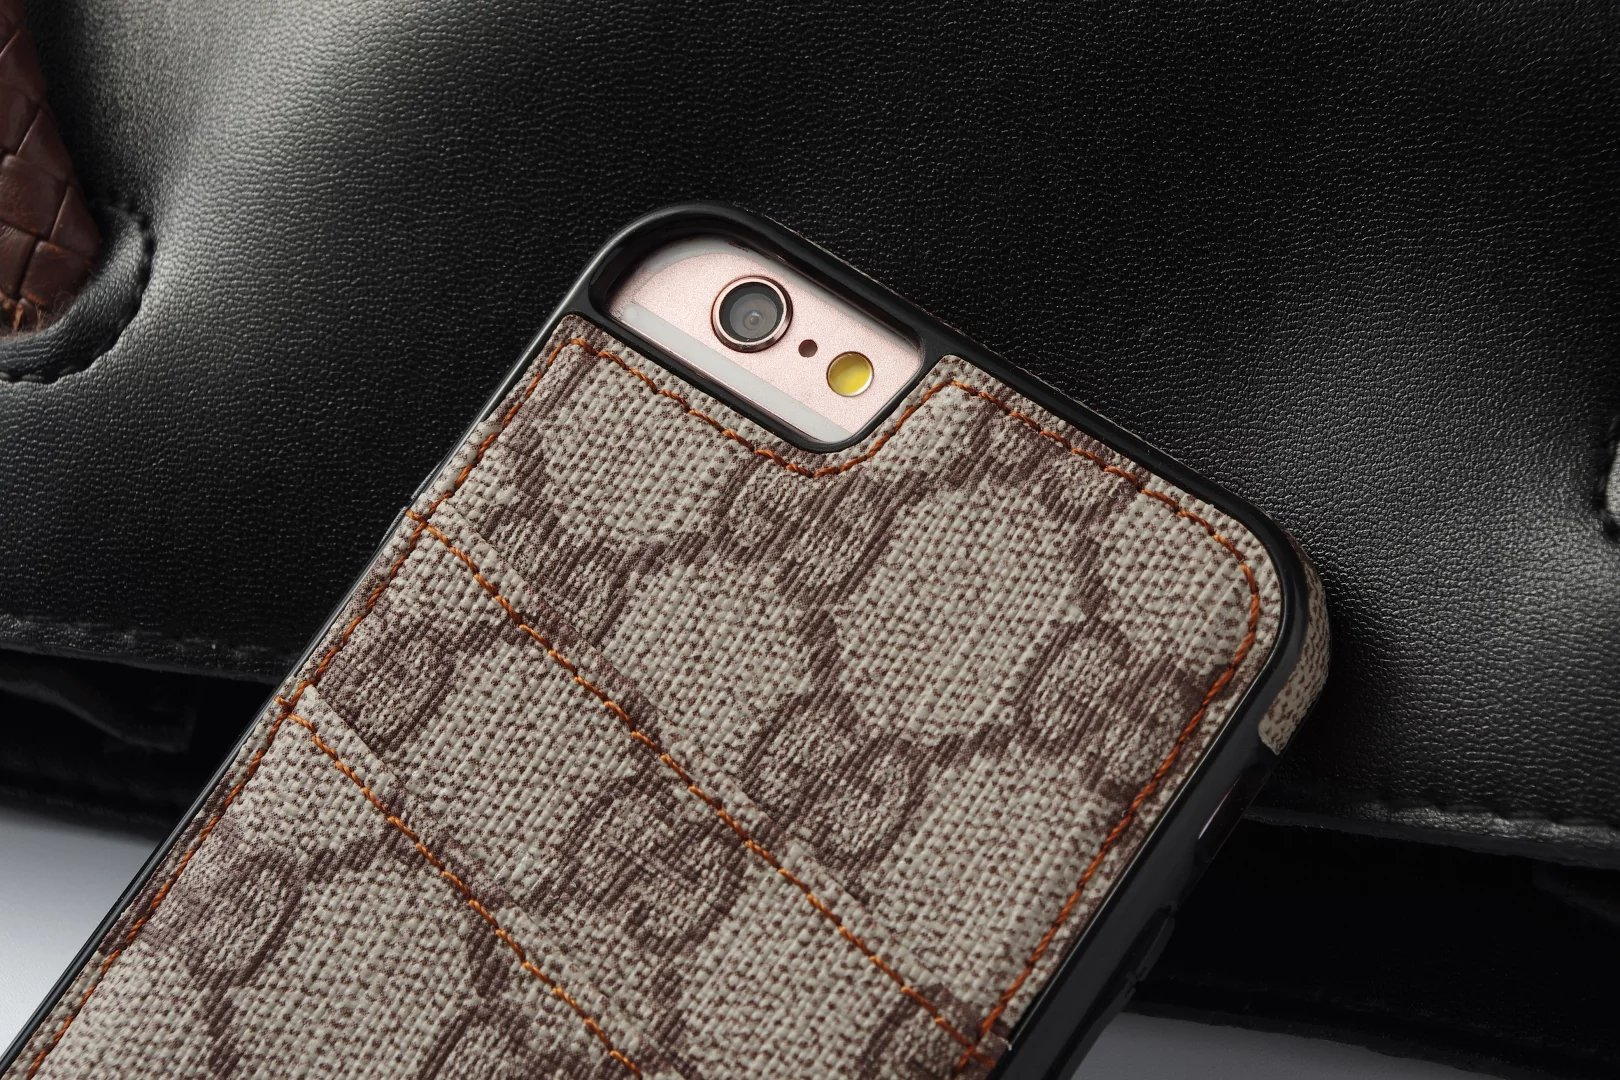 cases for the iphone 8 Plus iphone 8 Plus cases buy online Gucci iphone 8 Plus case phone covers and cases phone sleeve designer cases iphone 8 Plus mobile cover iphone cases for iPhone 8 Plus iphone battery mah